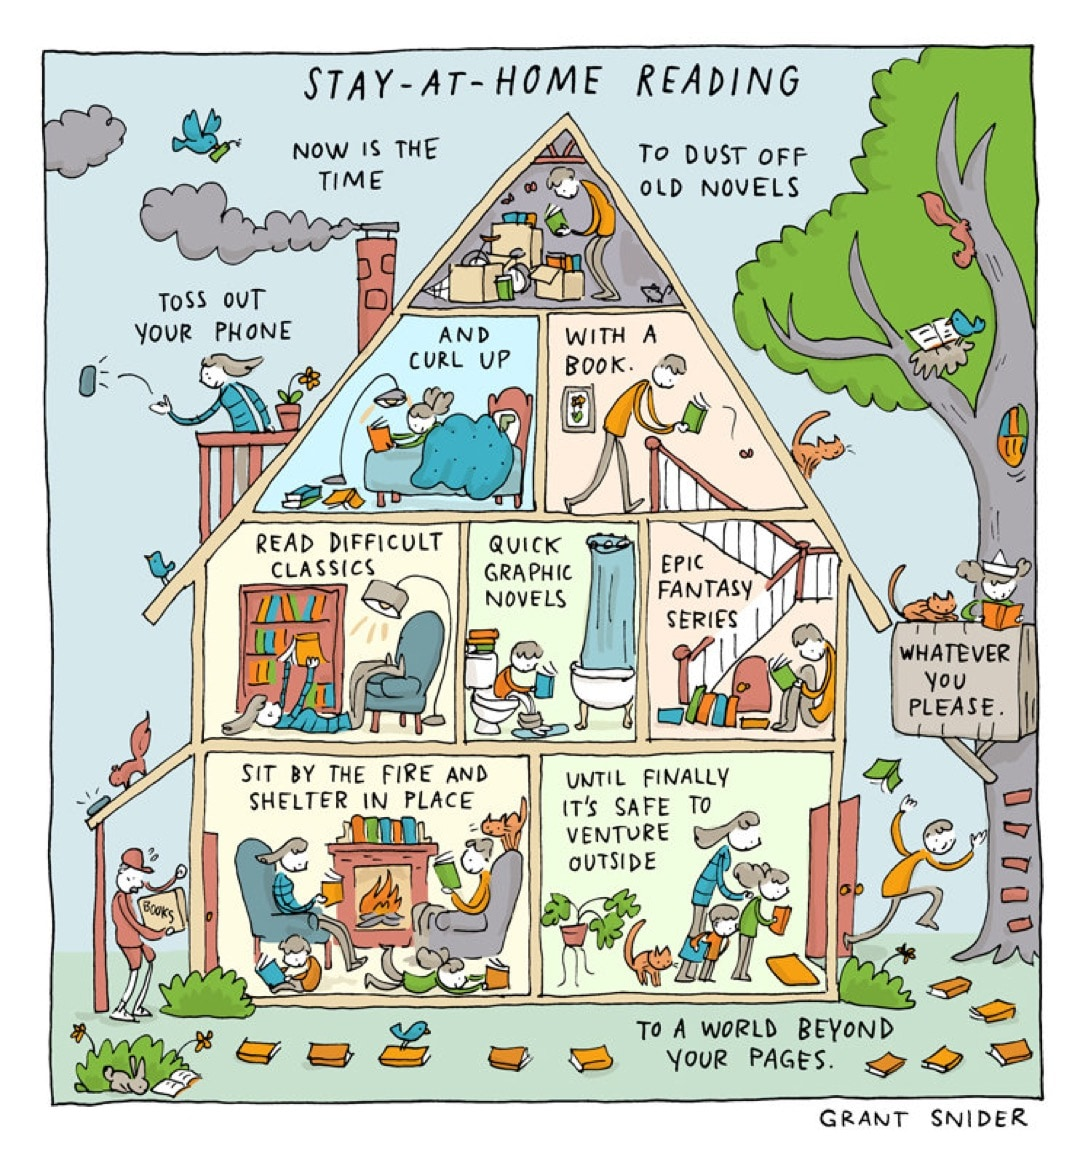 Stay-at-home Reading by Grant Snider - best cartoons about reading